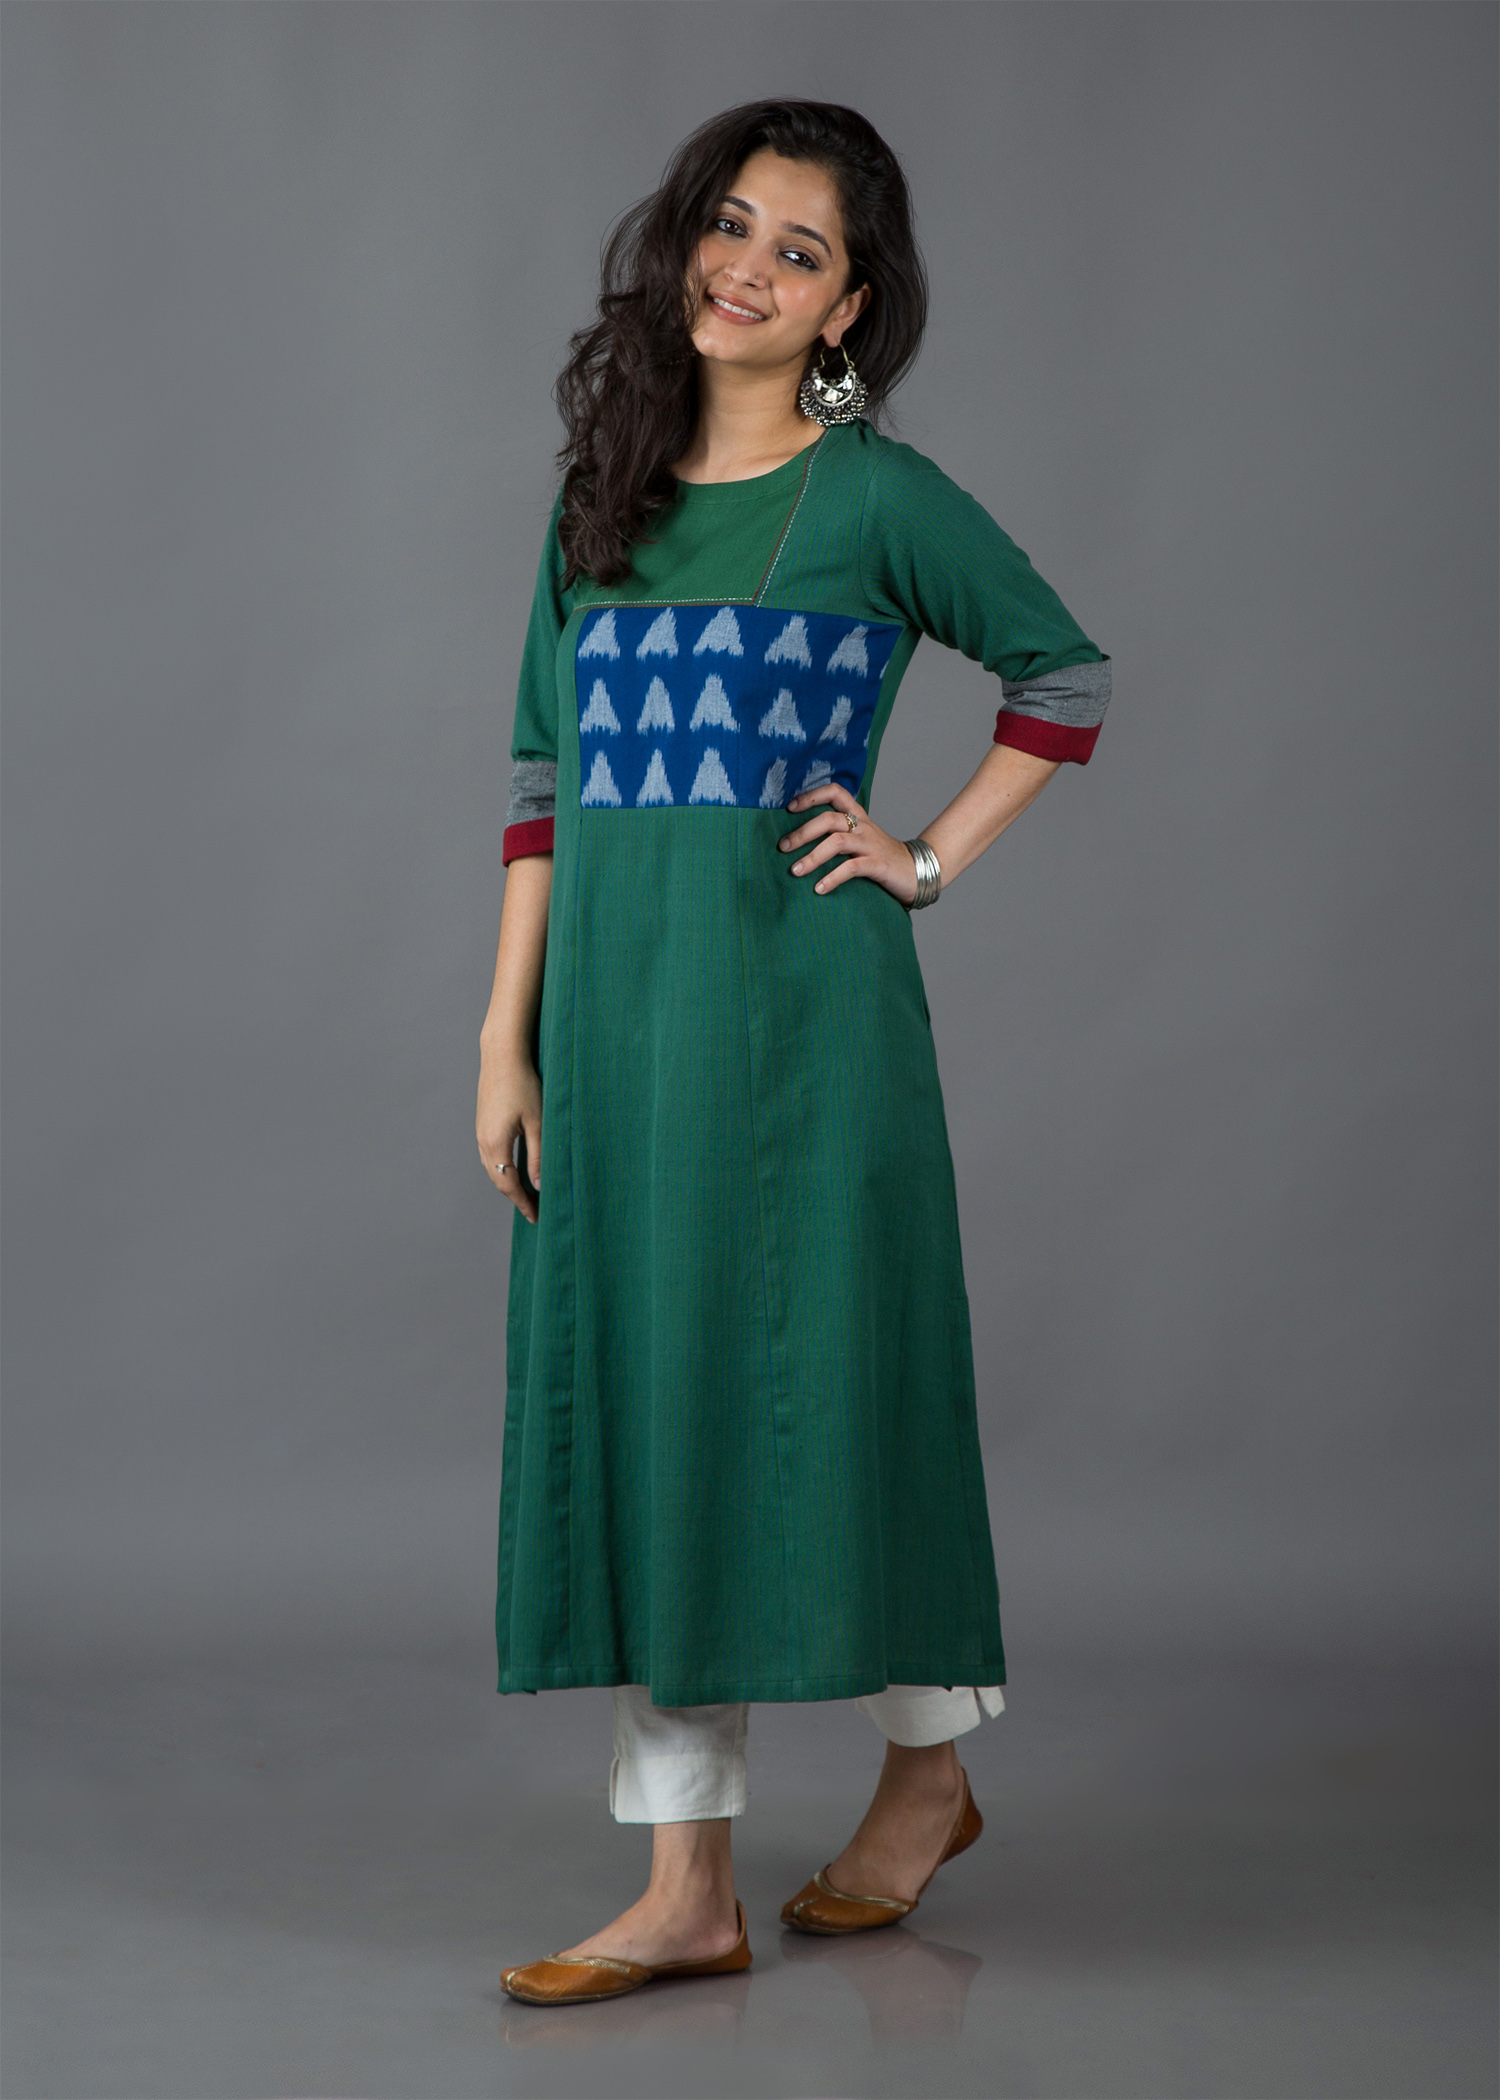 Fern Green & Blue Handwoven Cotton Kurta with Ikat Yoke